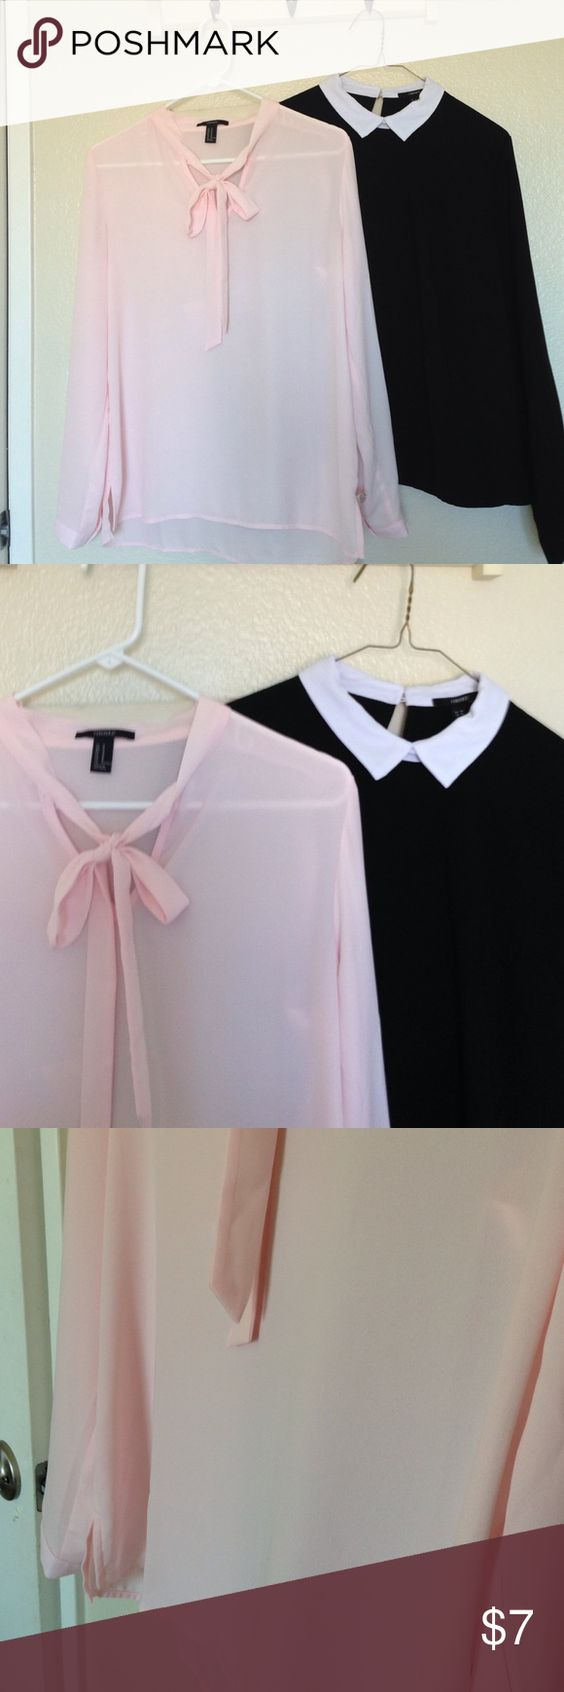 2 blouses Pink bow and black white collar blouses Set of 2 - Light Pink adjustable tie blouse and black with white collar blouses. Both long sleeve and in excellent condition. Great pice for both. Forever 21 Tops Blouses